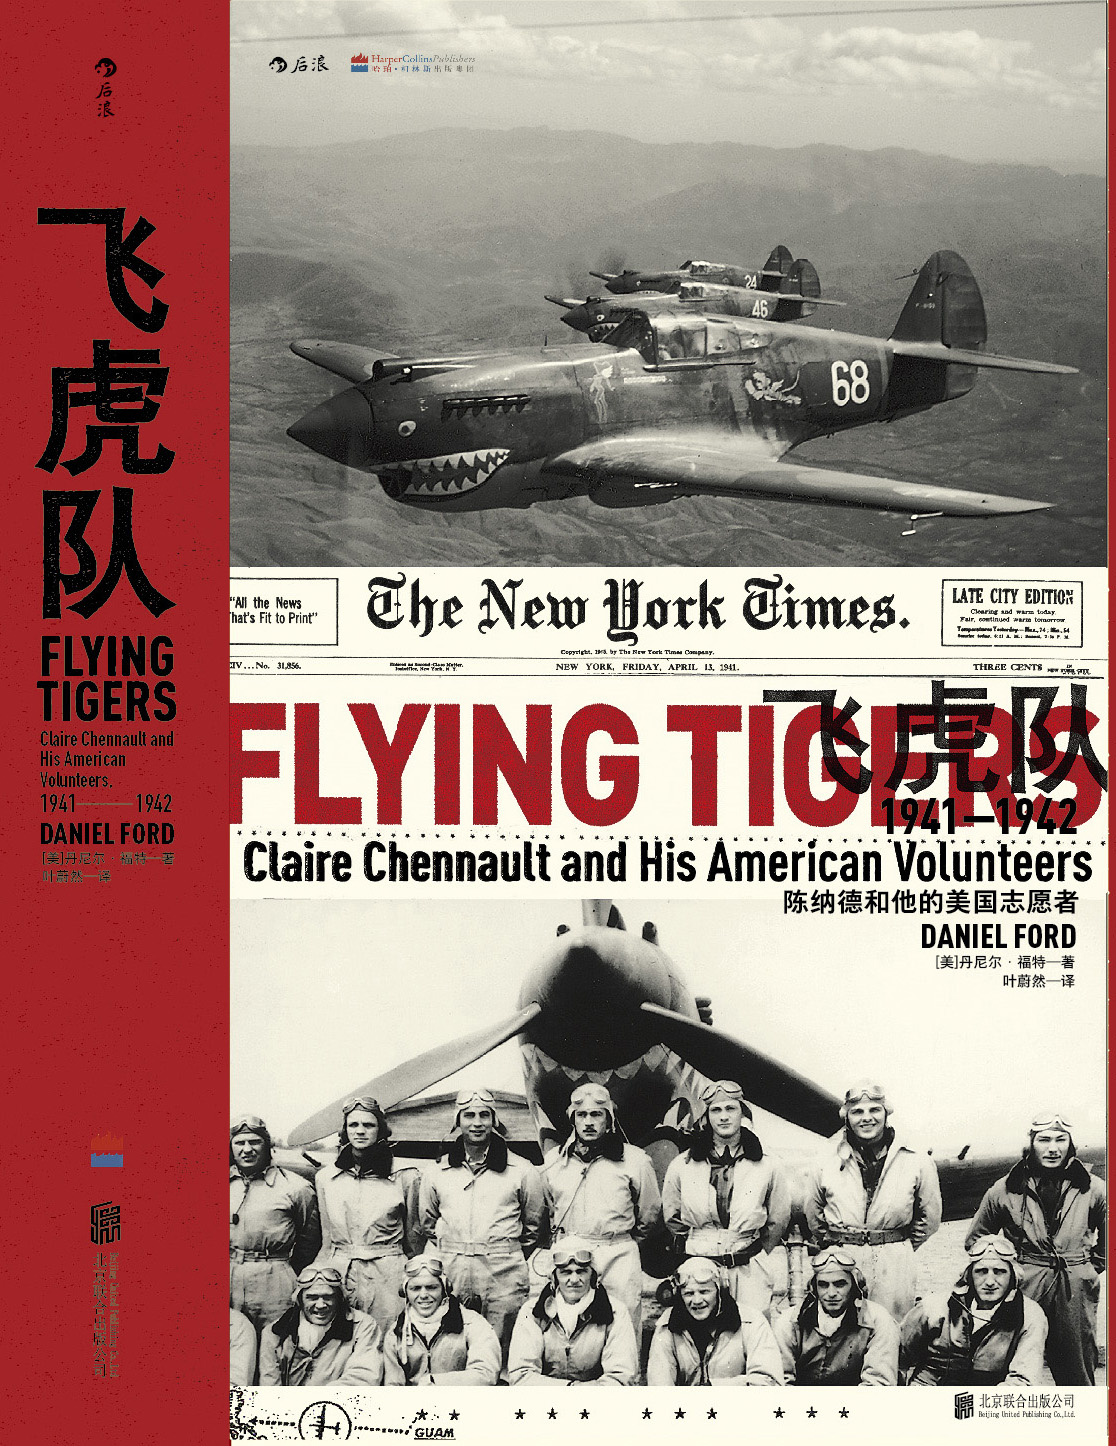 Flying Tigers, China